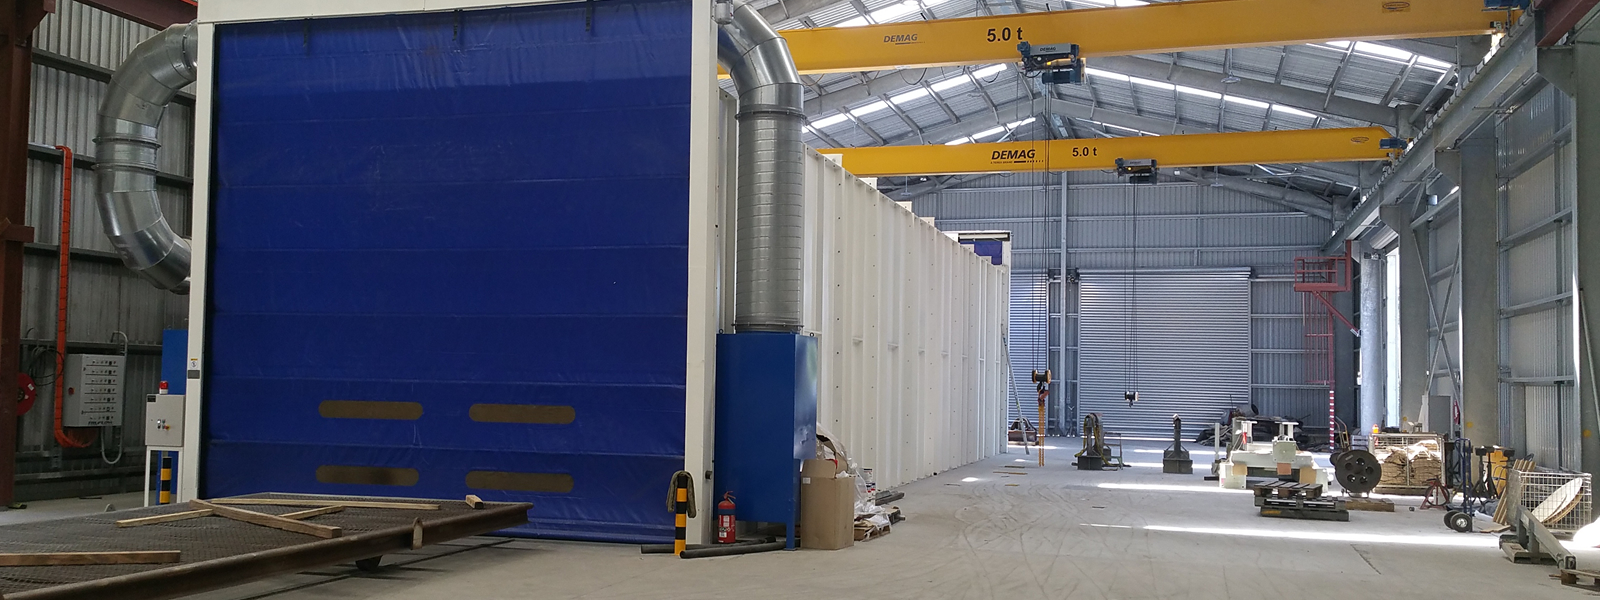 Blasting Facility Enclosed Booth